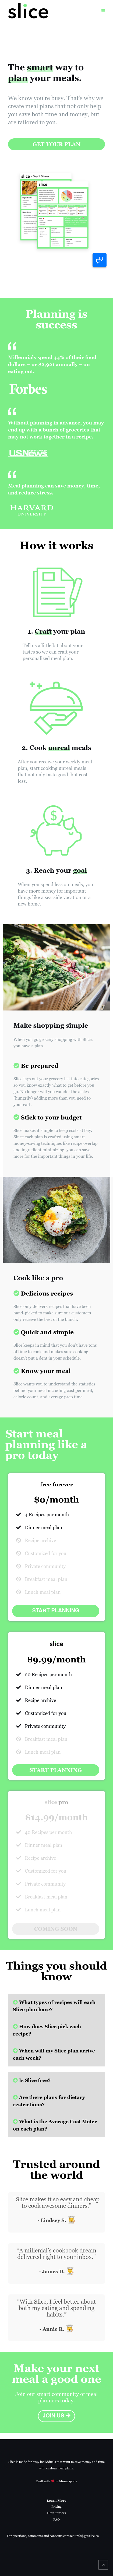 Example of Design for Food & Drink, Cooking & Recipes, Mobile Landing Page by getslice.co   Mobile Landing Page Design